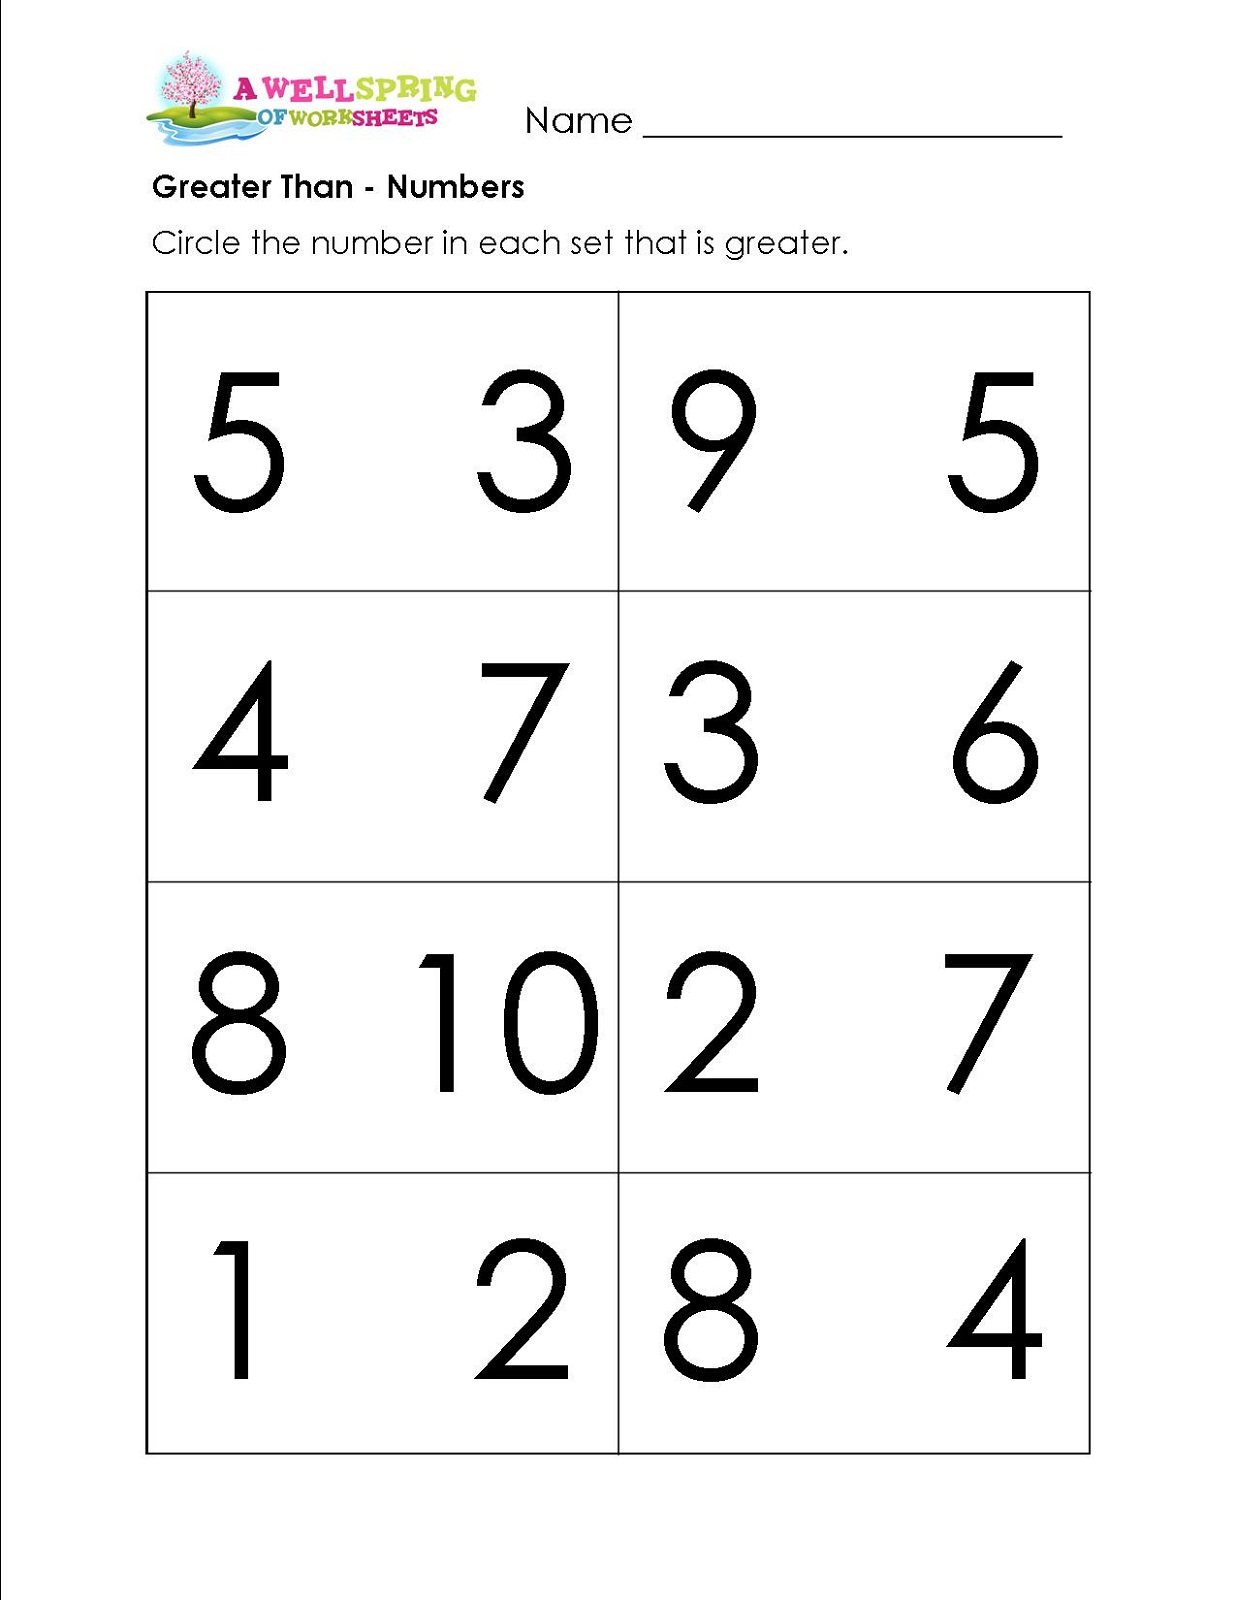 Worksheets Worksheets For Kindergarden math worksheets kinder 5615873 aks flight info